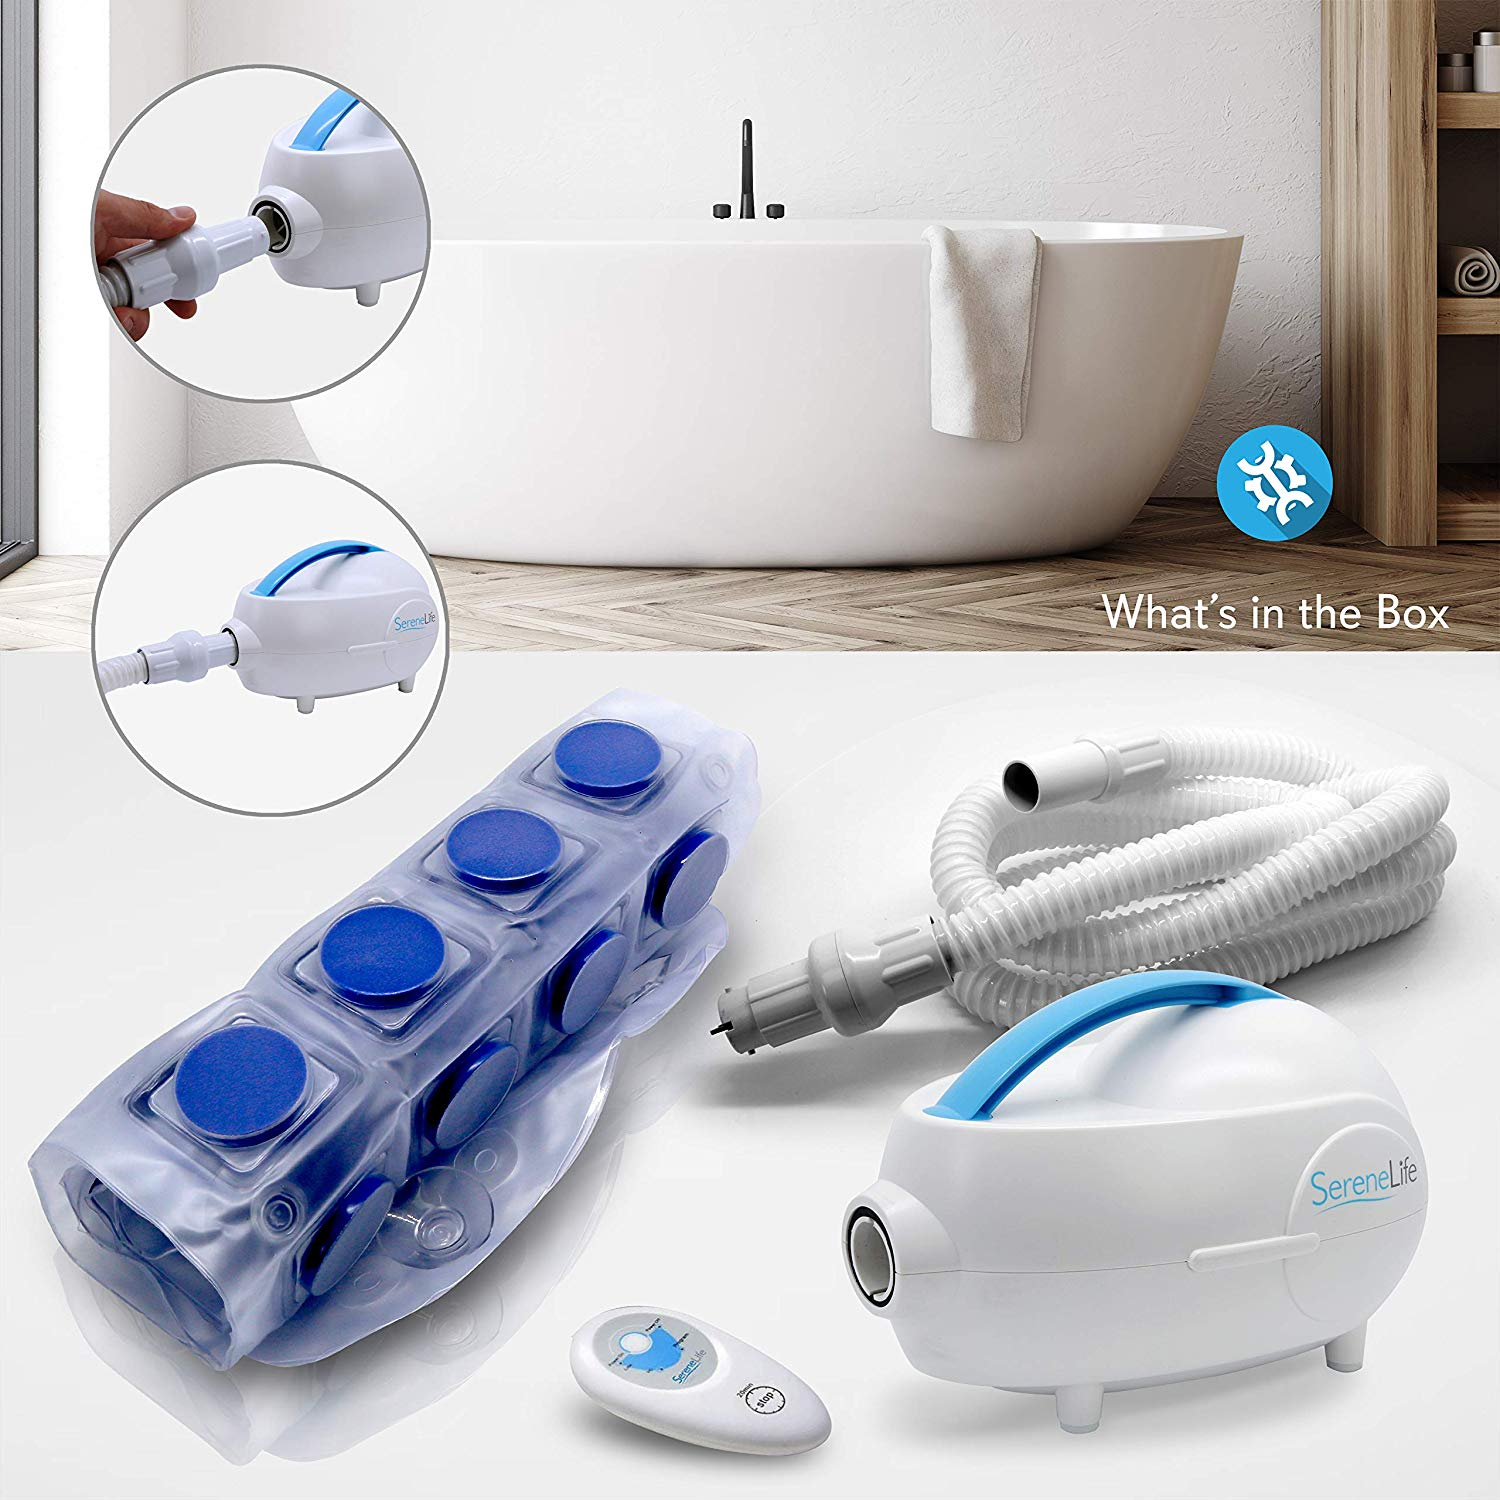 Portable spa bubble bath massager –thermal spa waterproof non-slip mat with suction cup bottom